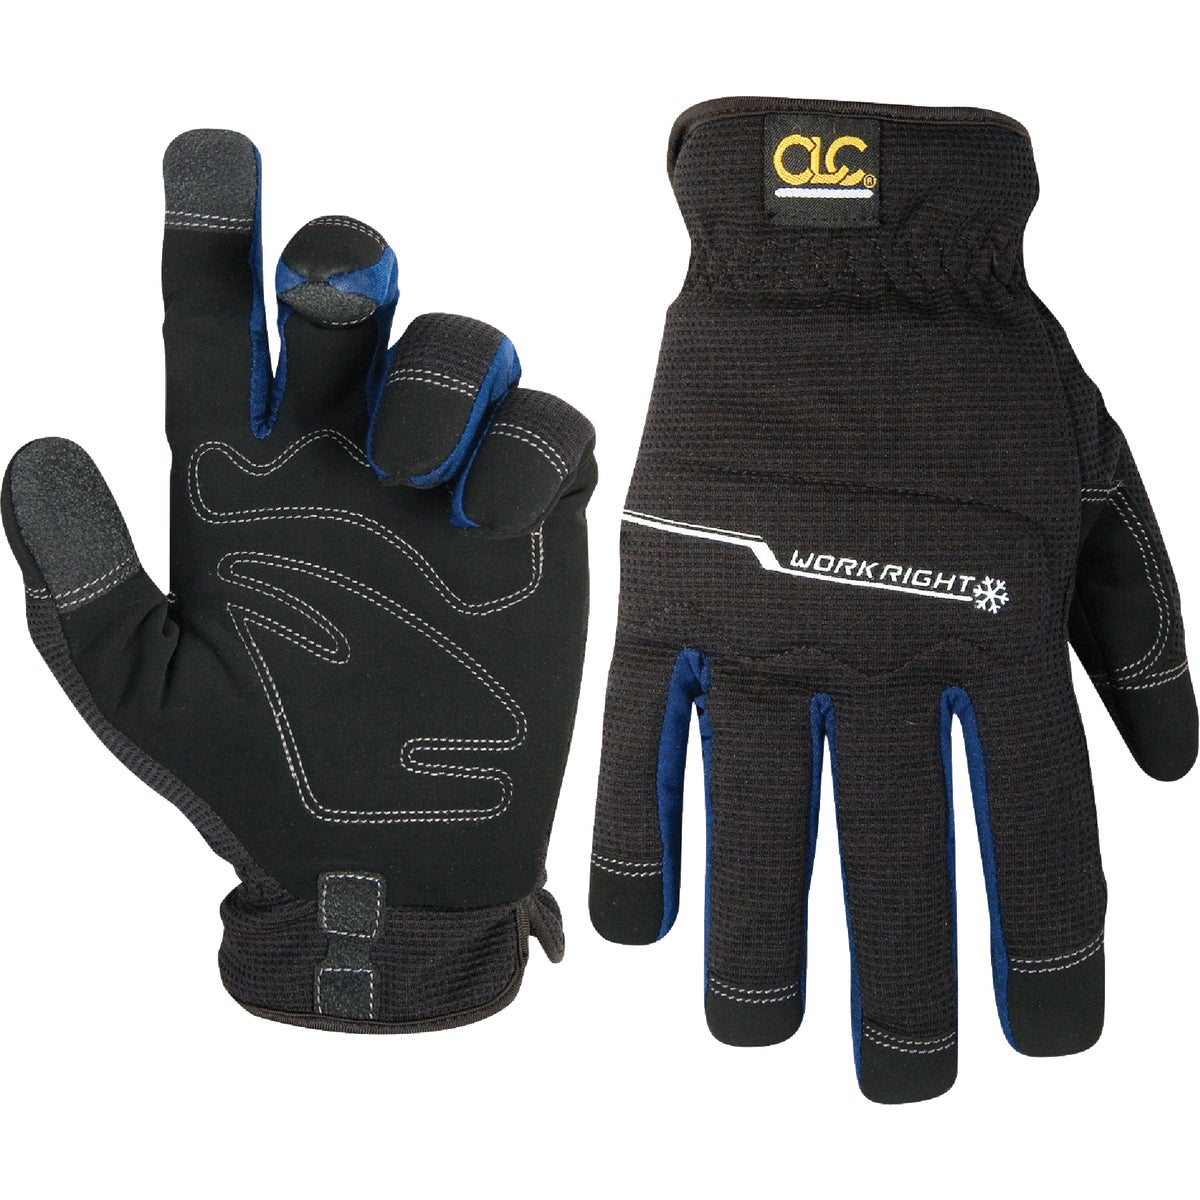 LRG WNTR WORKRIGHT GLOVE - L123L by Custom Leathercraft